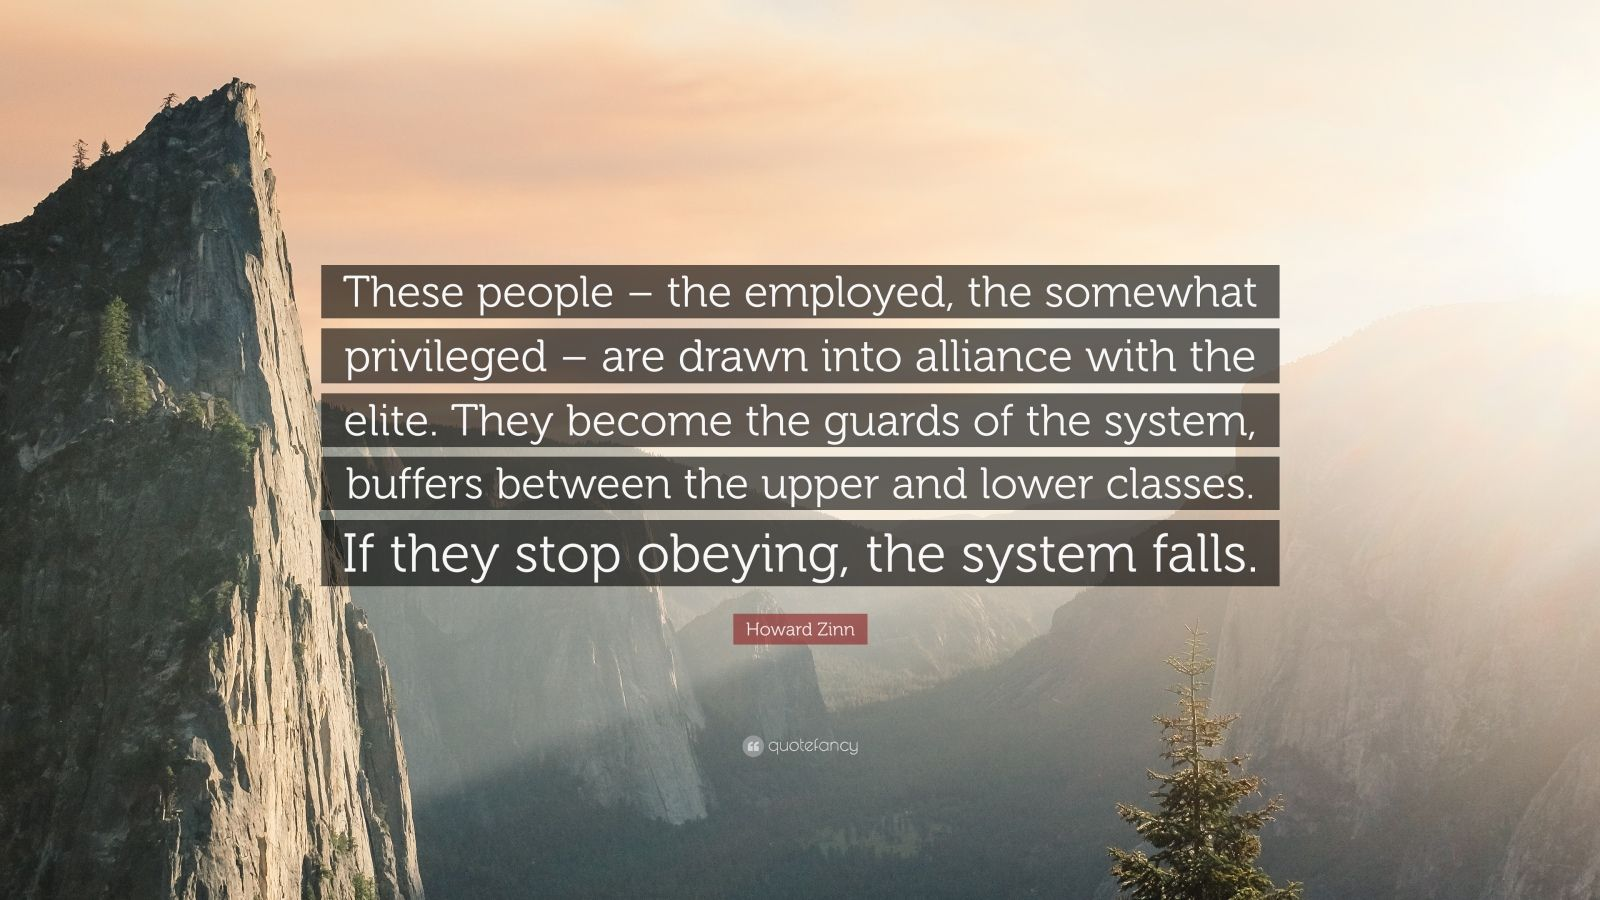 """Howard Zinn Quote: """"These people – the employed, the somewhat privileged – are drawn into alliance with the elite. They become the guards of the system, buffers between the upper and lower classes. If they stop obeying, the system falls."""""""